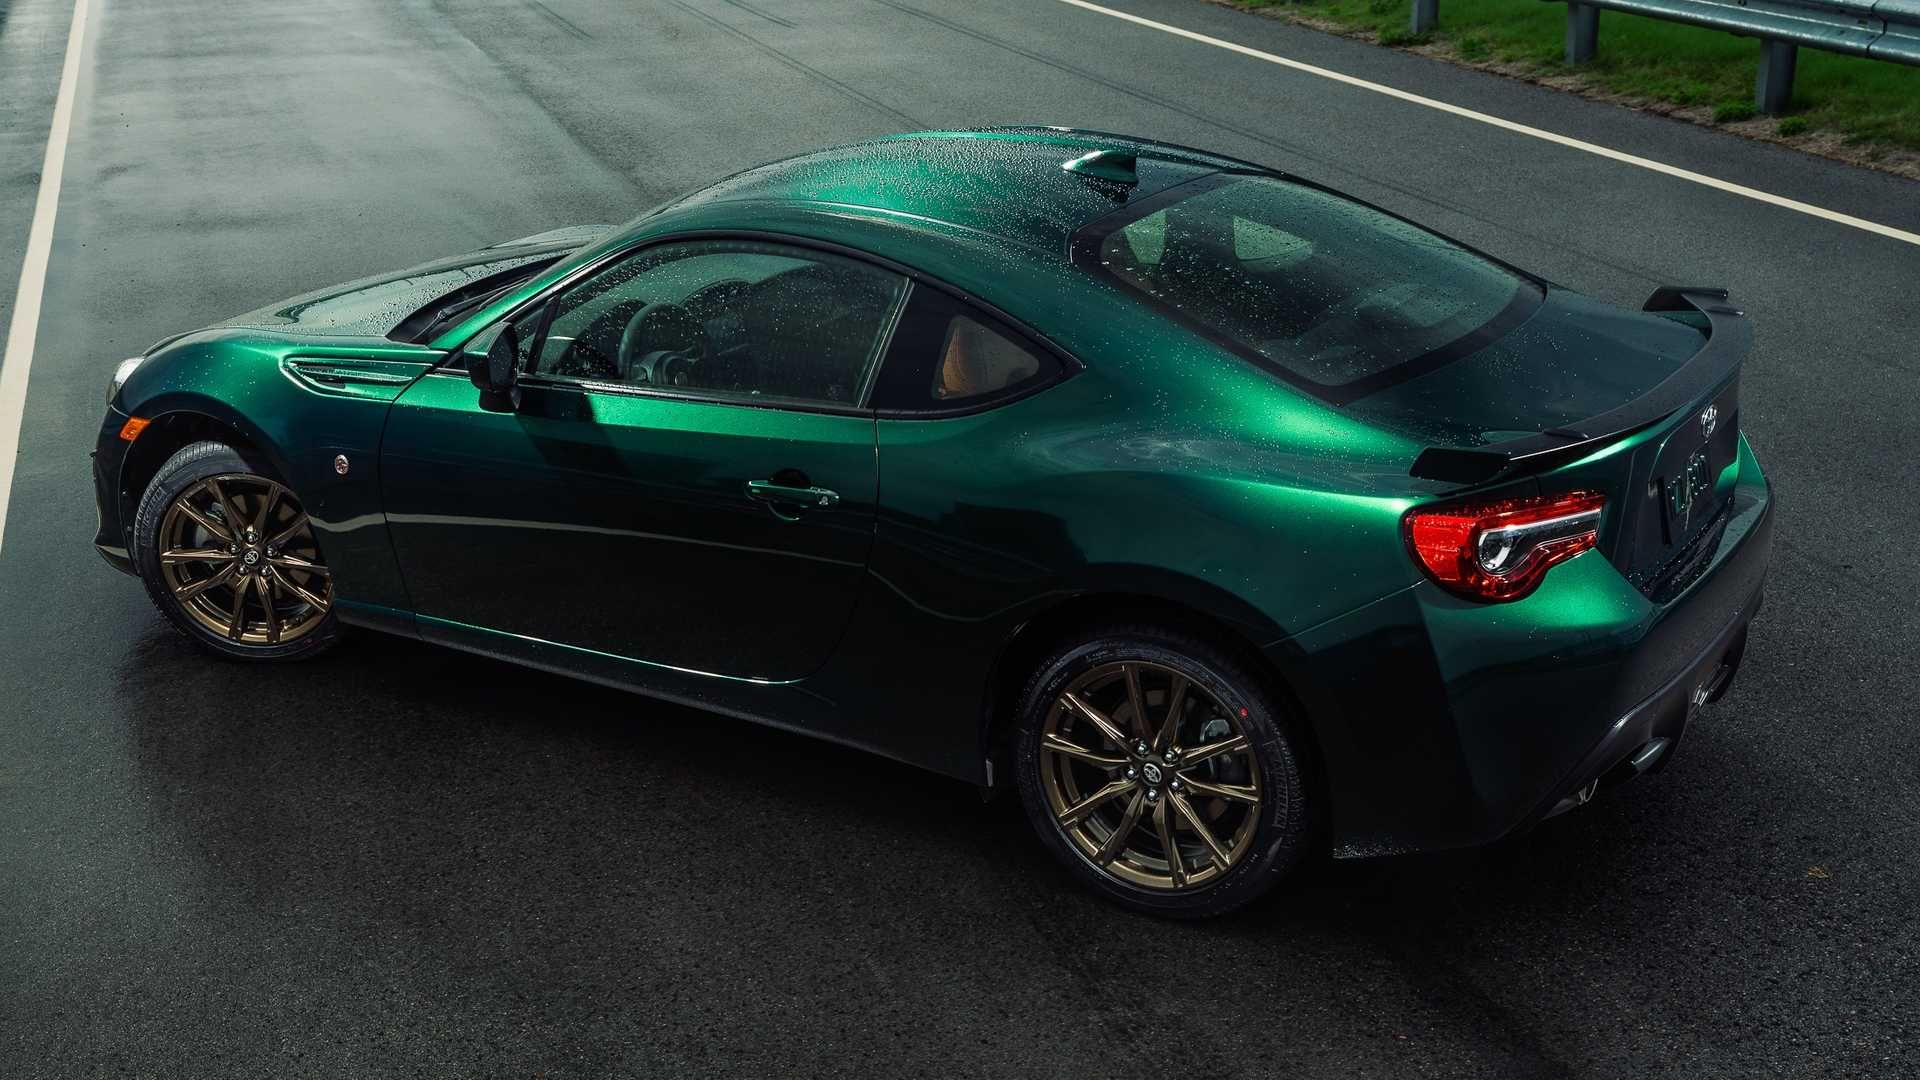 The 2020 Toyota 86 Hakone Edition Sports Car Features A Striking Green Exterior Paint 17 Inch Twisted Spoke Bronze Wheels A Black Spoil Toyota 86 Toyota Japanese Cars